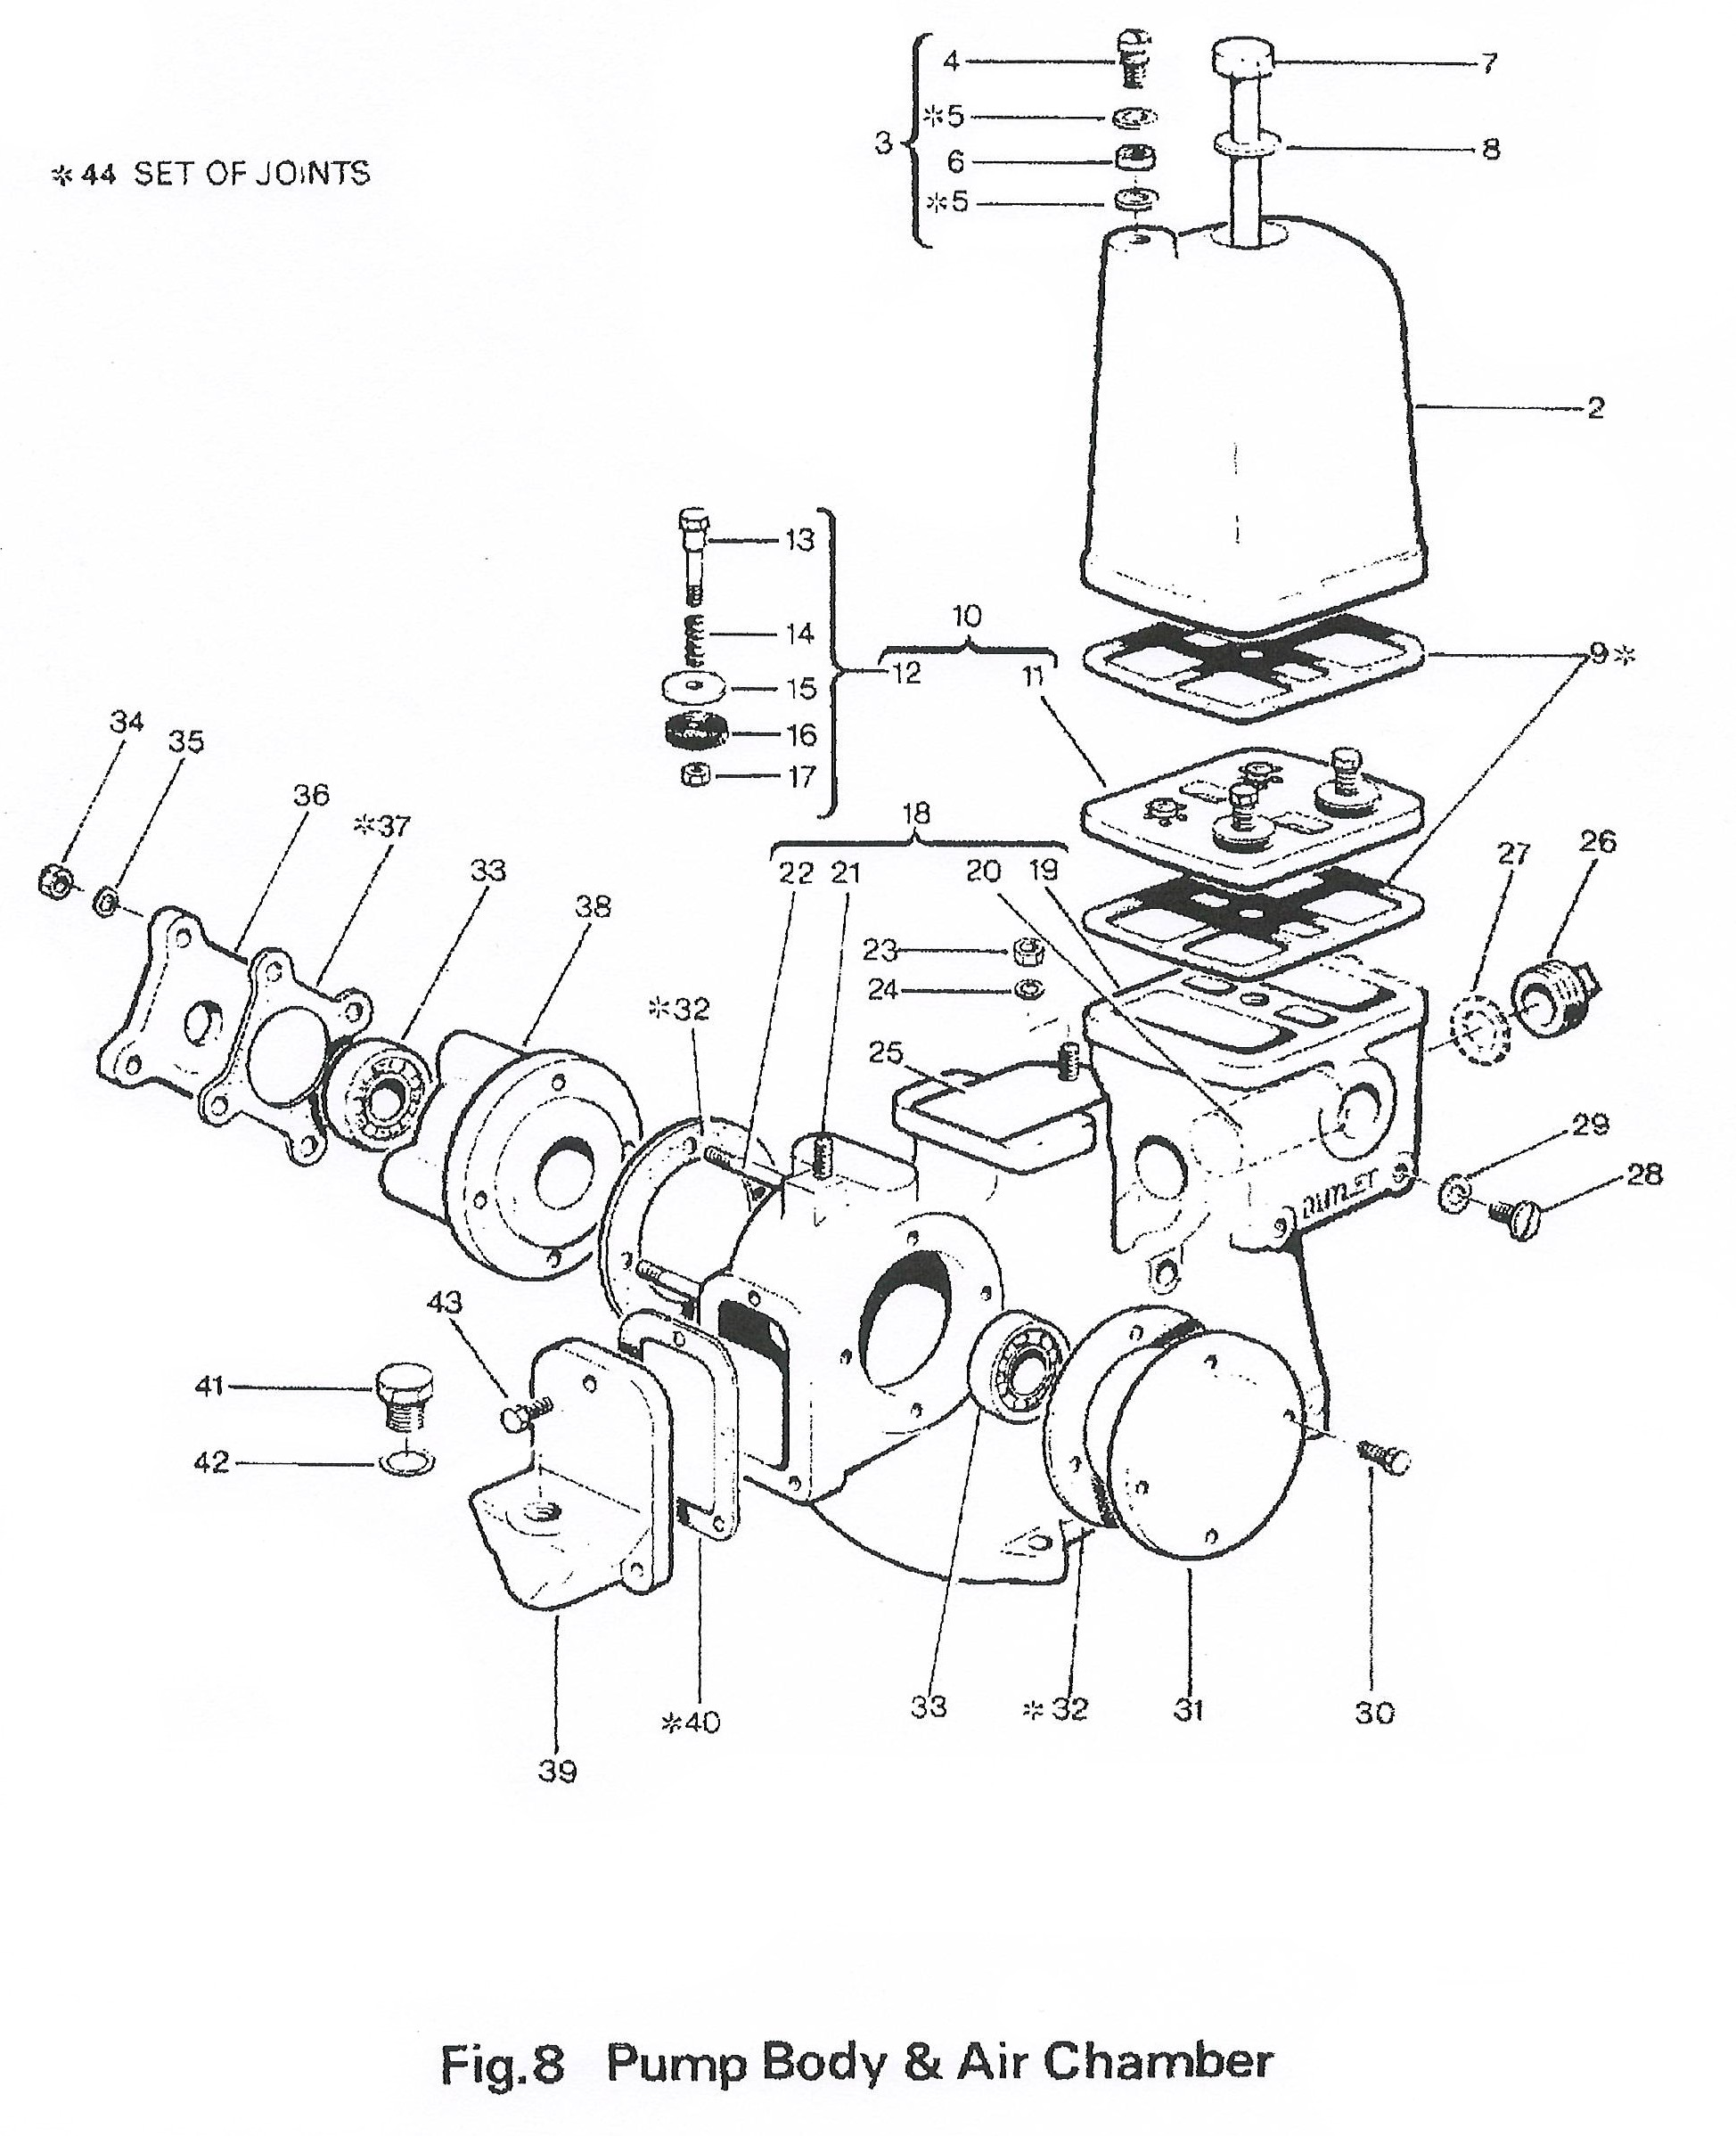 WRG-9159] 2 5 Engine Exploded Diagram